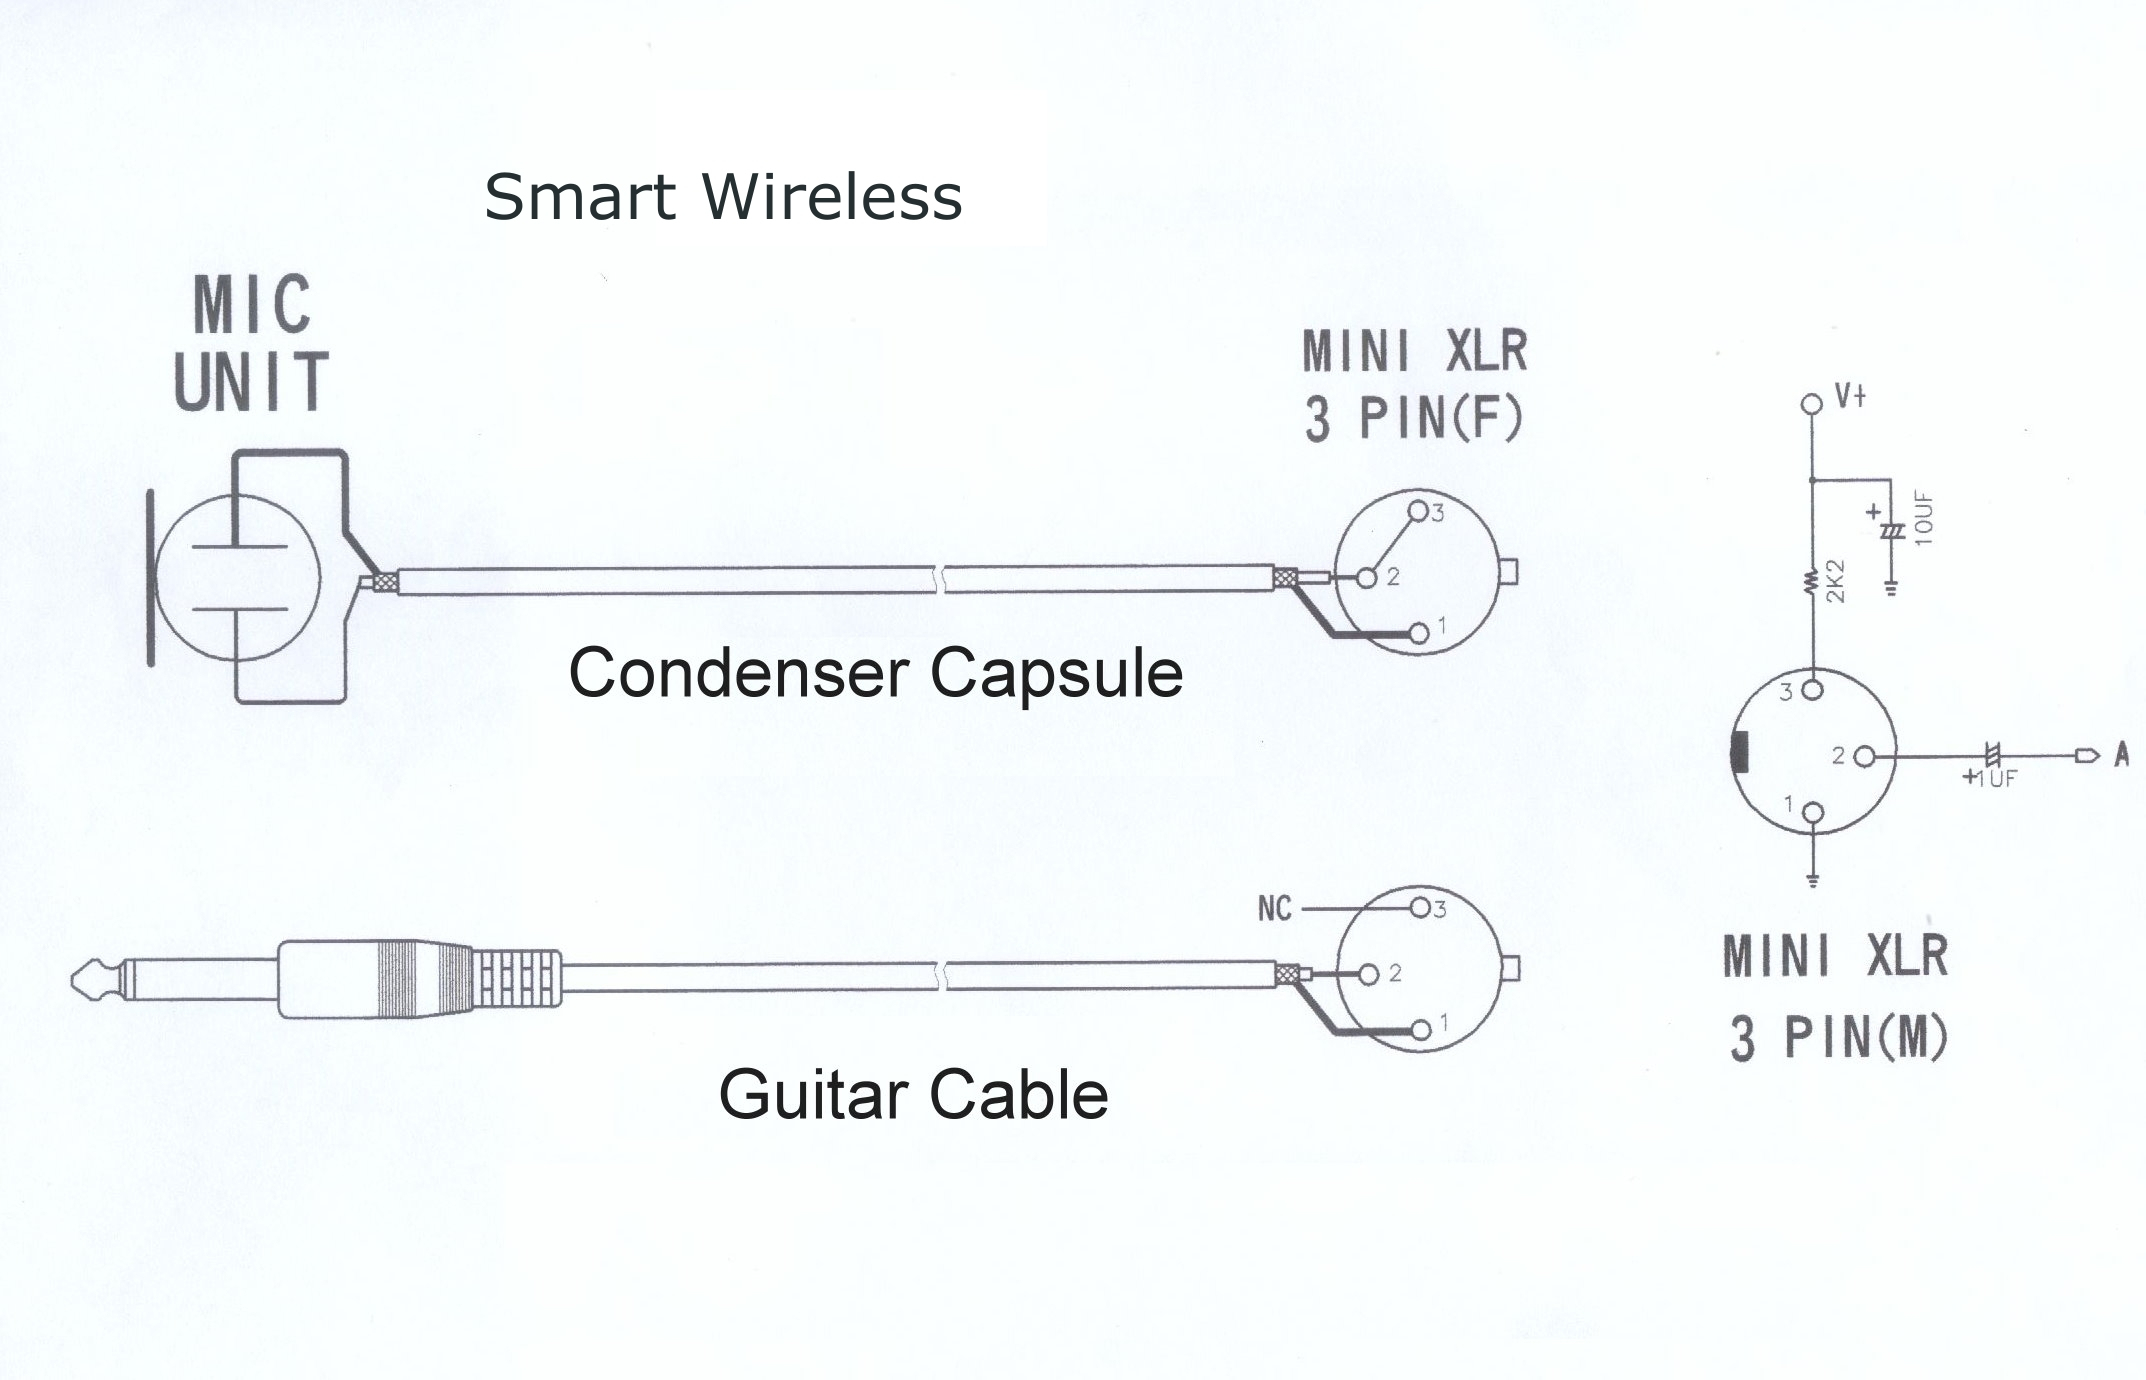 3 Pin Xlr Wiring Diagram, Cable Wiring, Etc. - Wiring Diagram For Electric Microphone To Usb